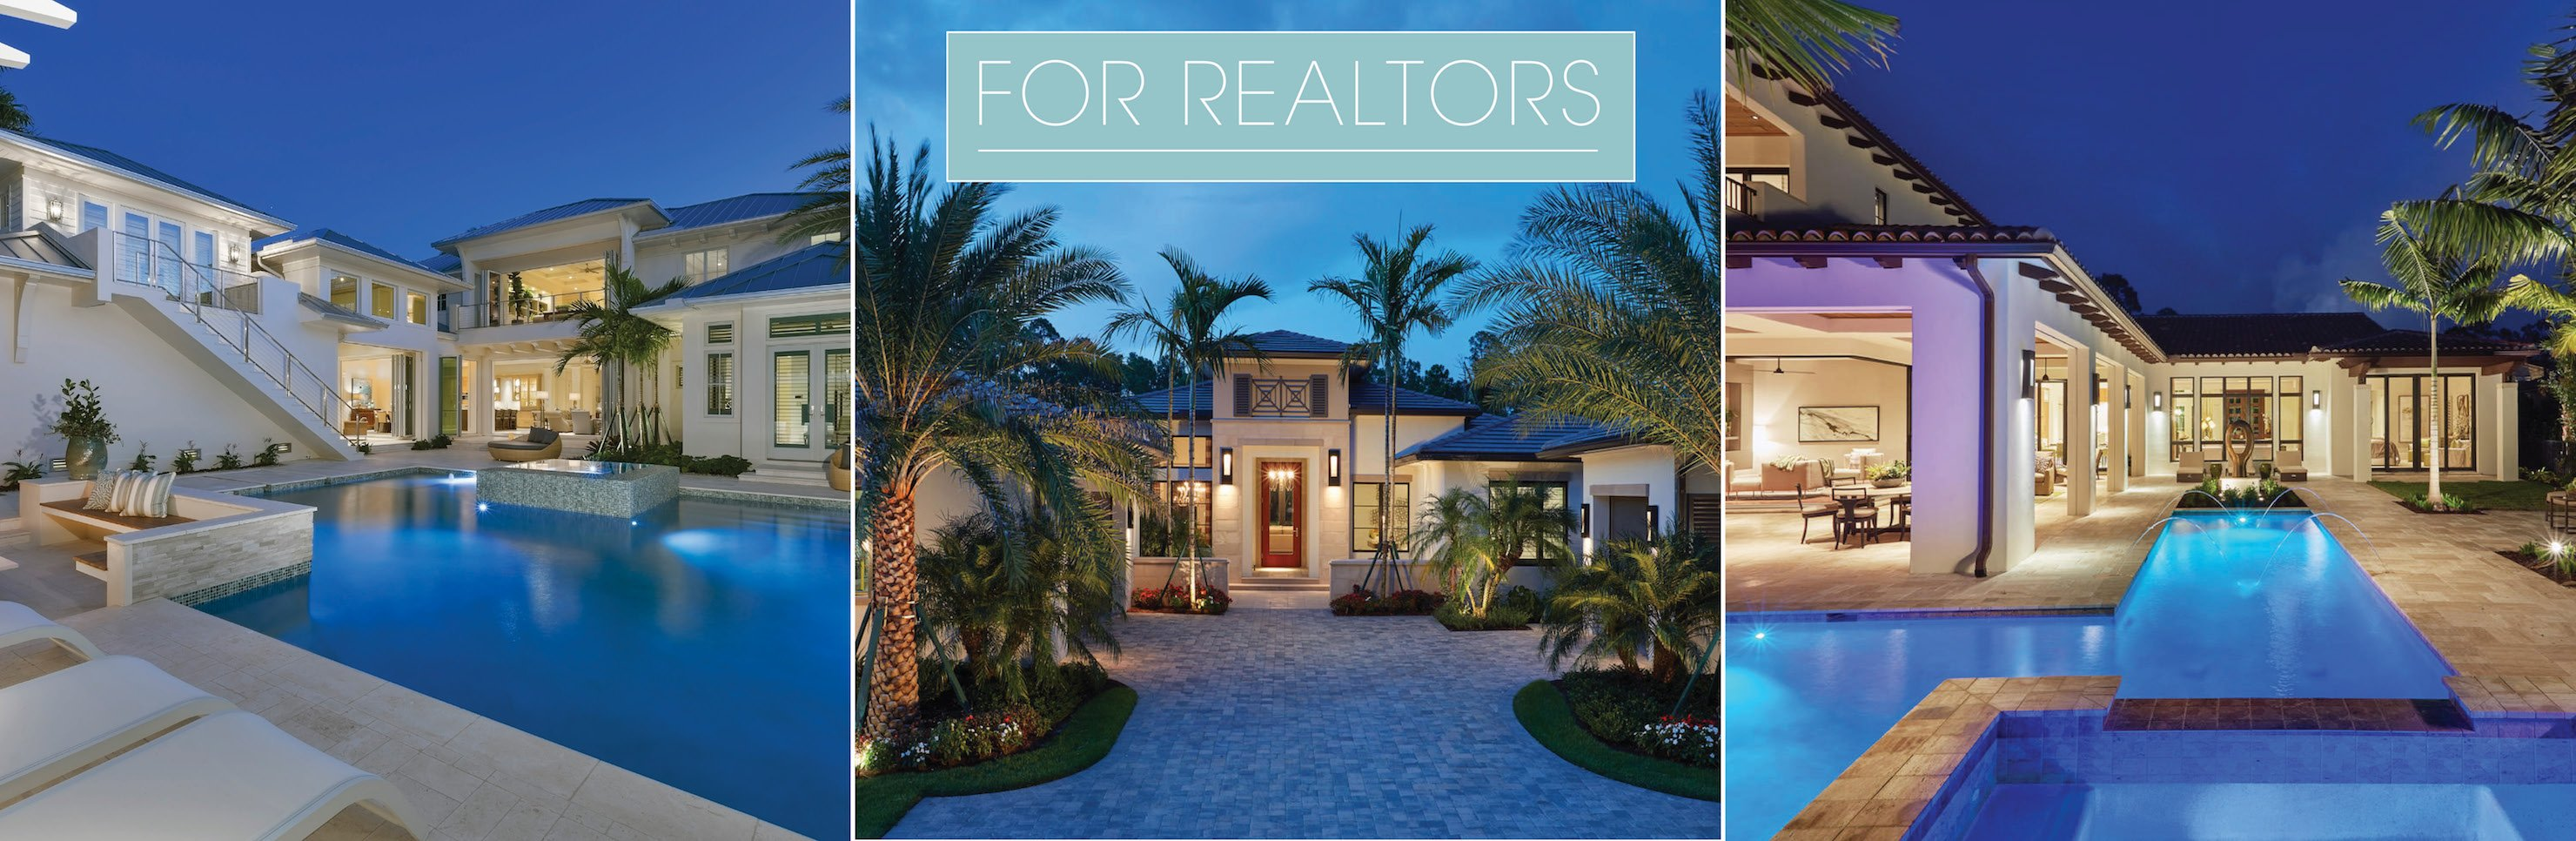 Realtor Page_LBH_HeaderImage-2.jpg